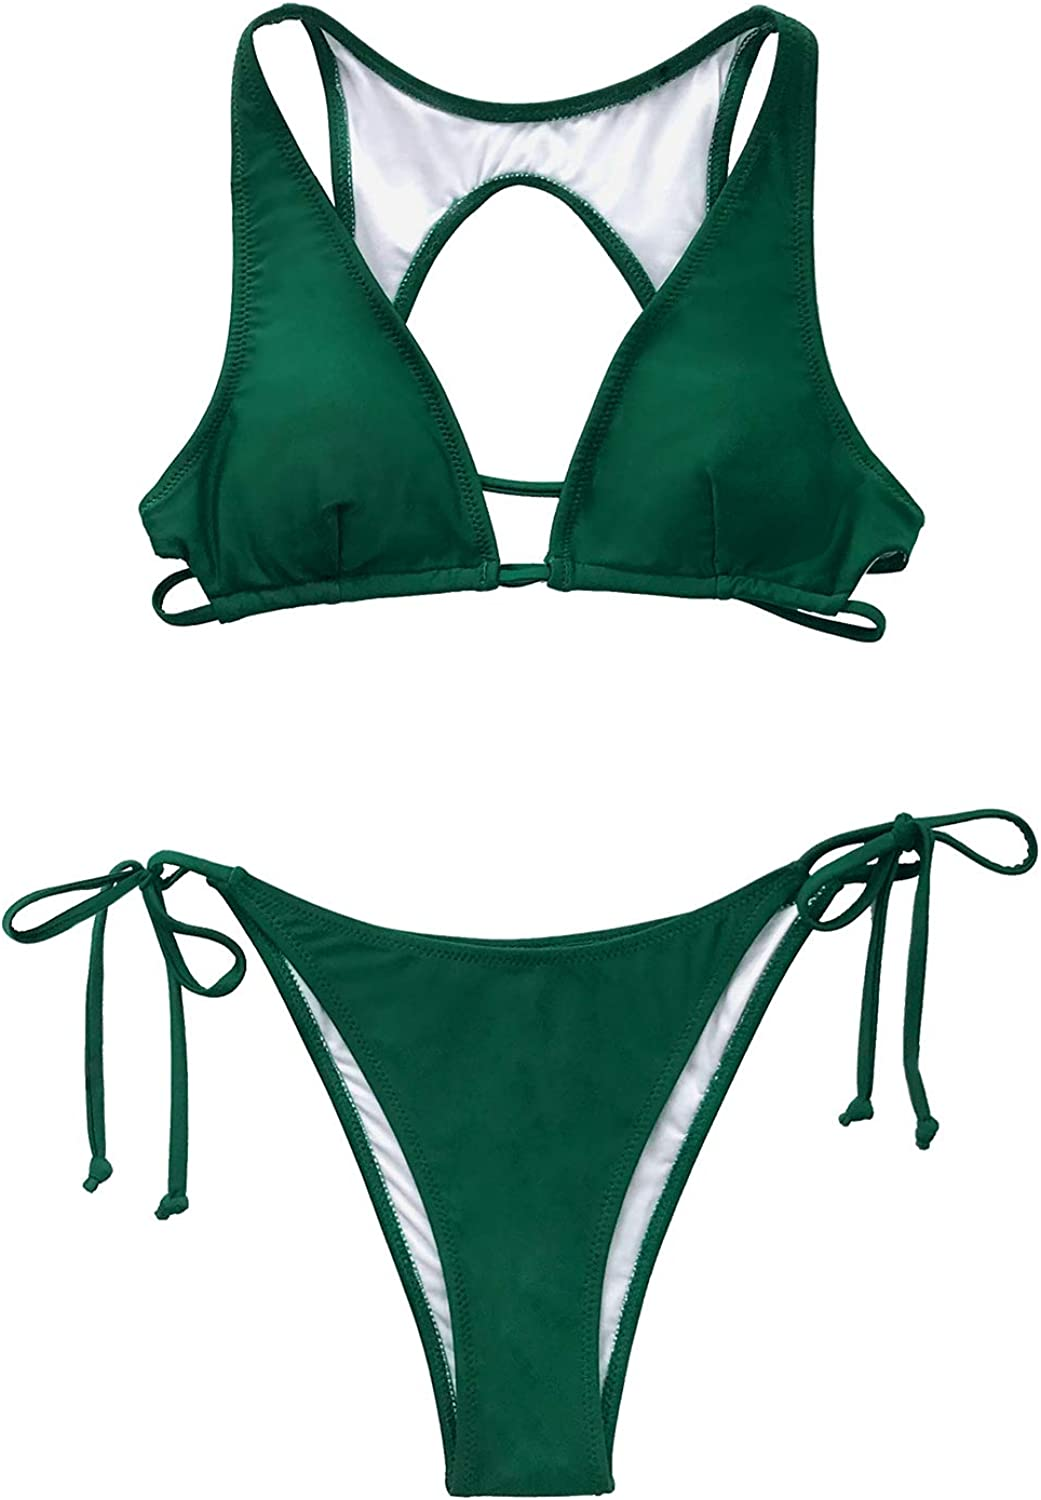 amazon com cupshe women s low rise v neck double straps drawstring bikini set xs green clothing amazon com